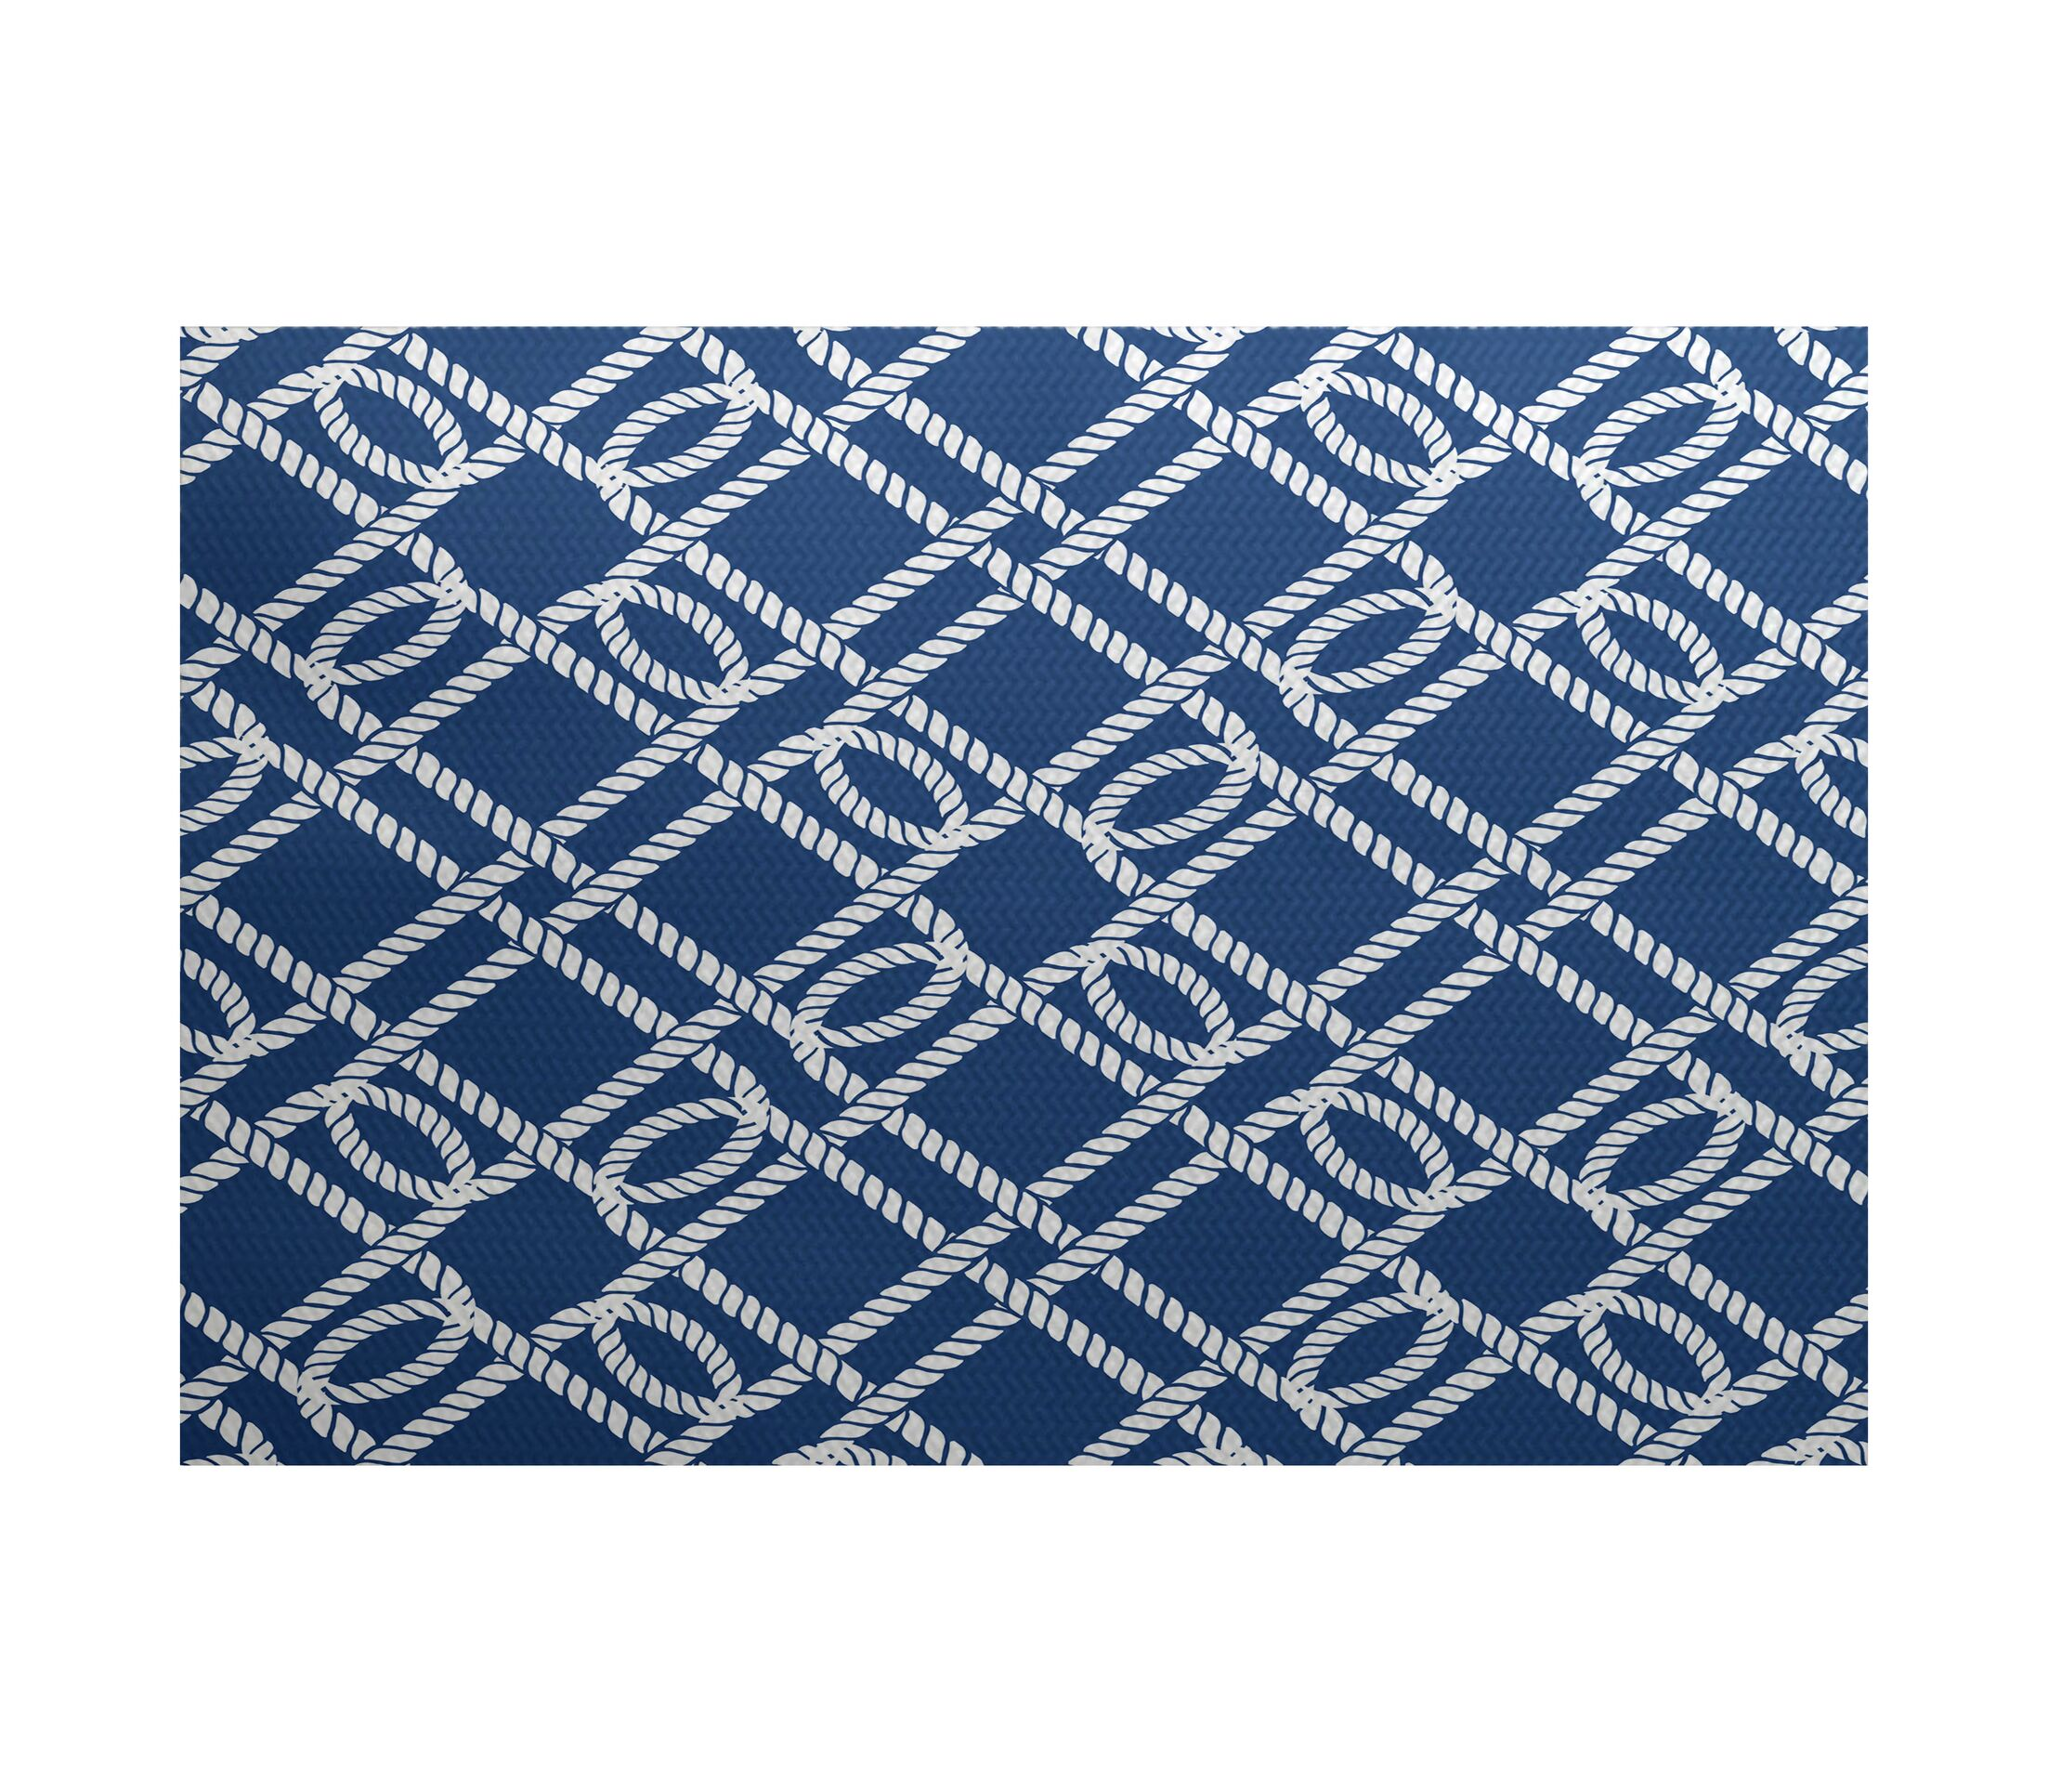 Bridgeport Blue Indoor/Outdoor Area Rug Rug Size: Rectangle 3' x 5'